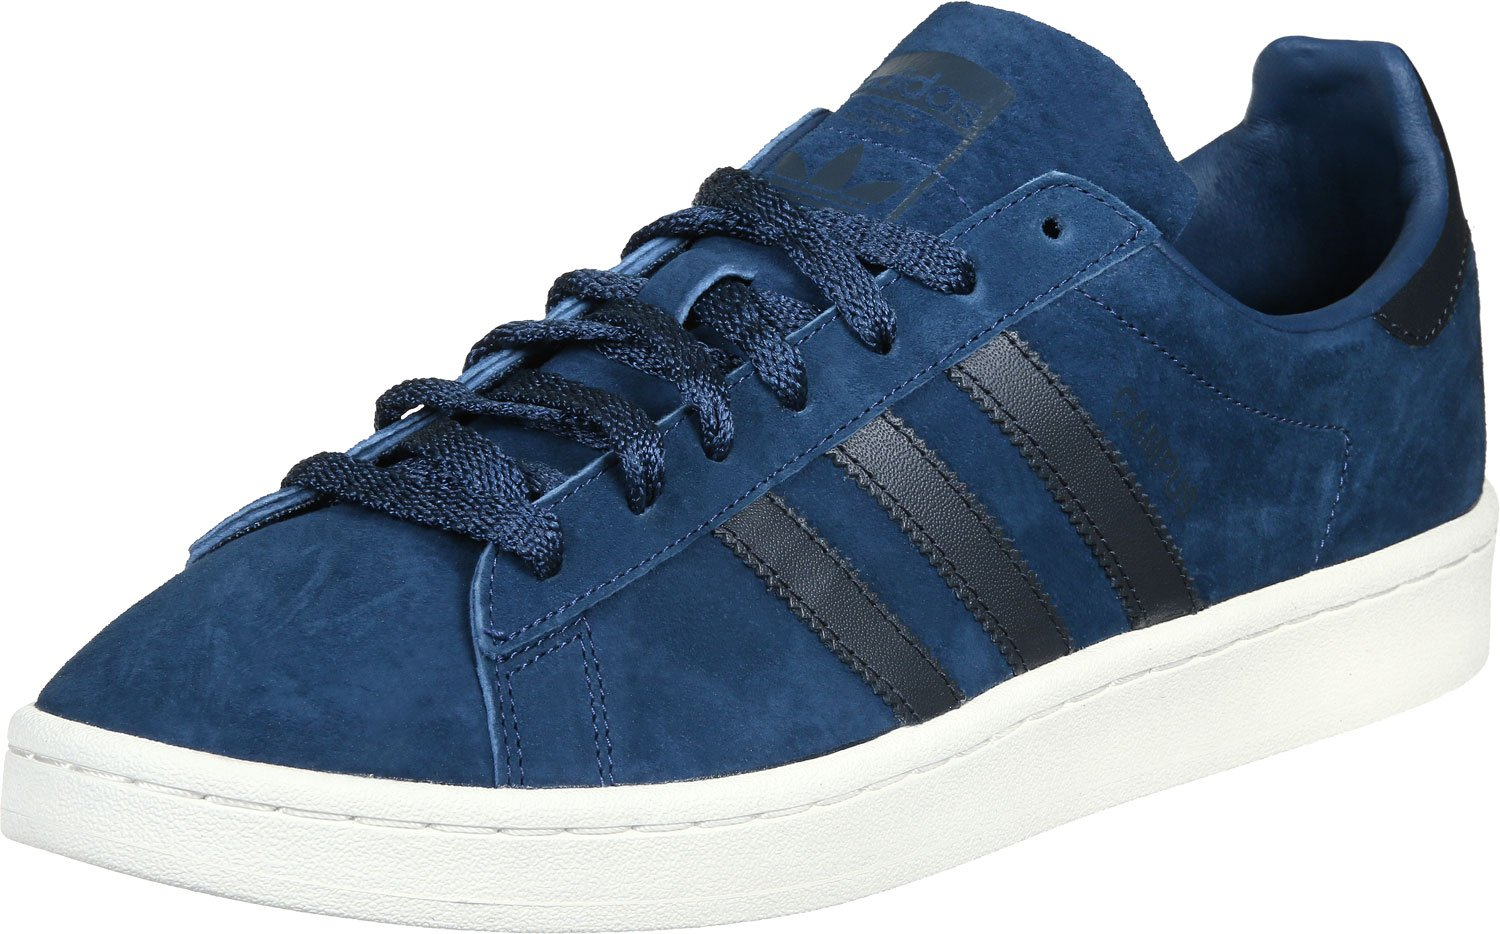 5 Trainers Adidas Galleon Originals Mens 10 Sneakersuk Campus Us SULMpVzGjq